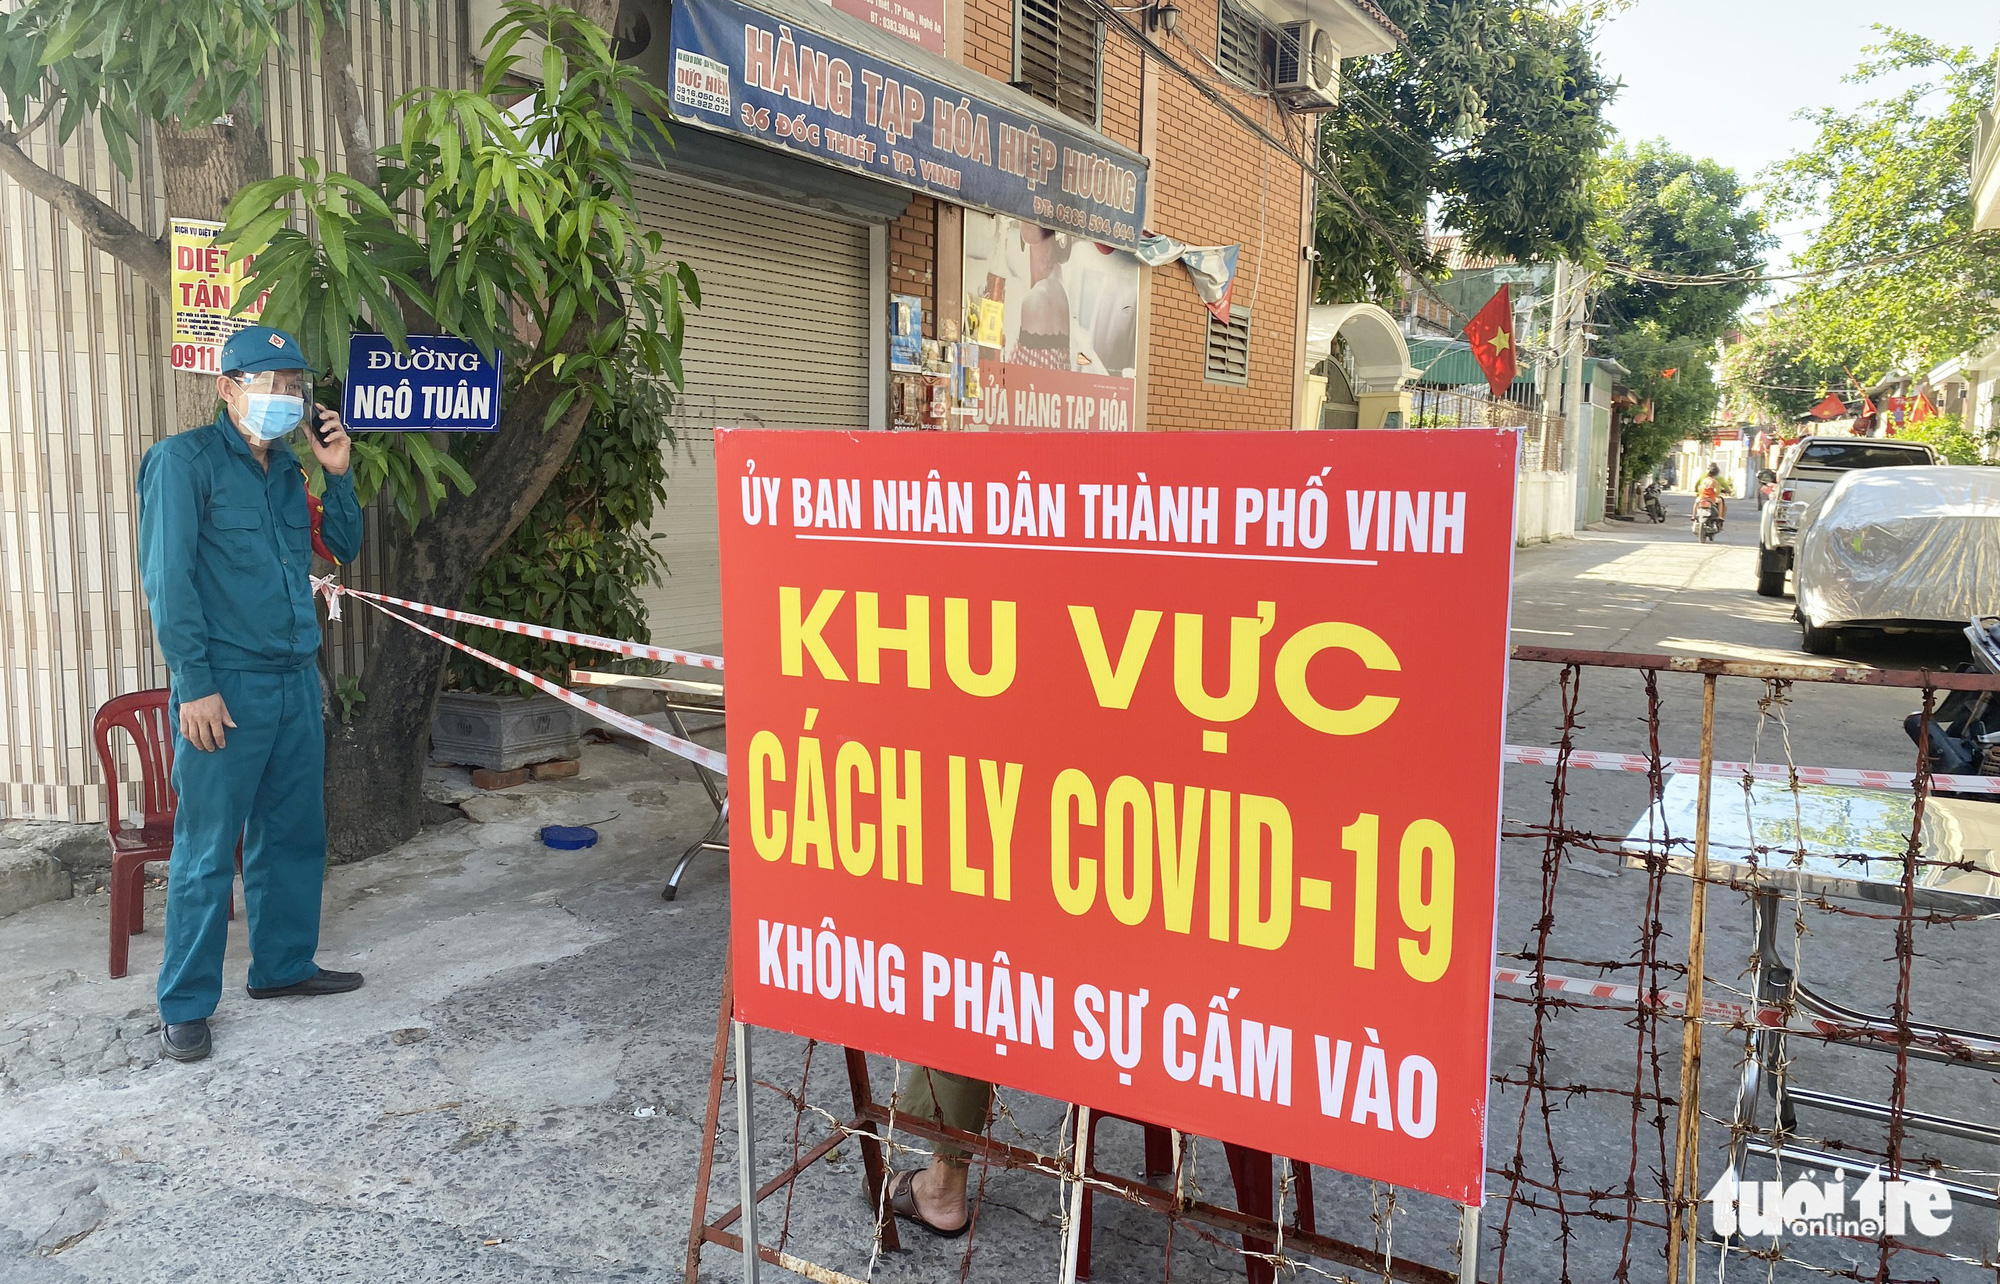 North-central Vietnamese province records four new COVID-19 cases